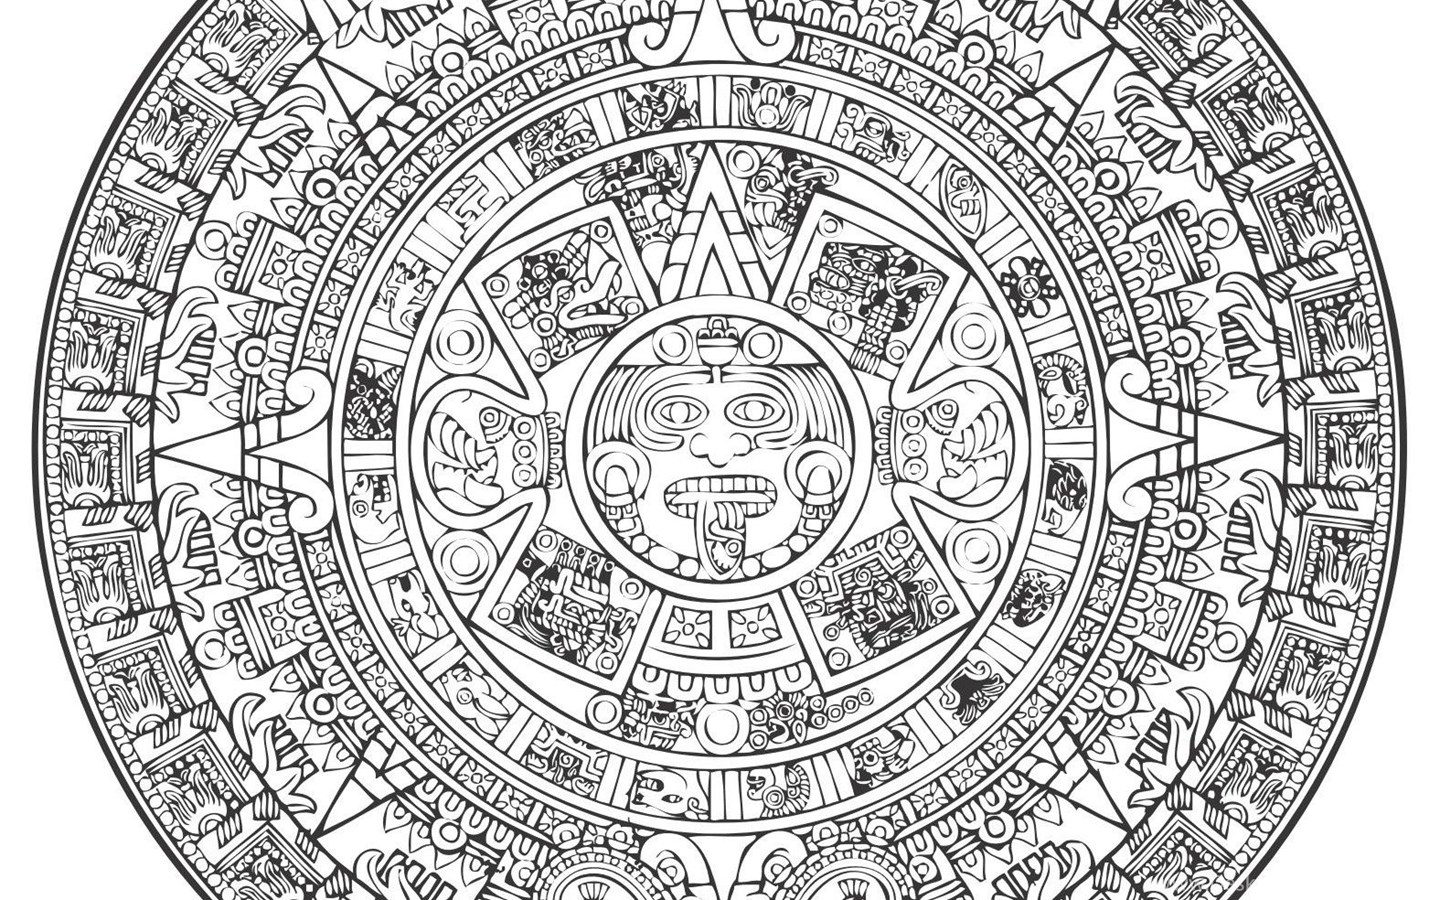 aztec calendar outline aztec calendar reference and pattern page with images outline aztec calendar